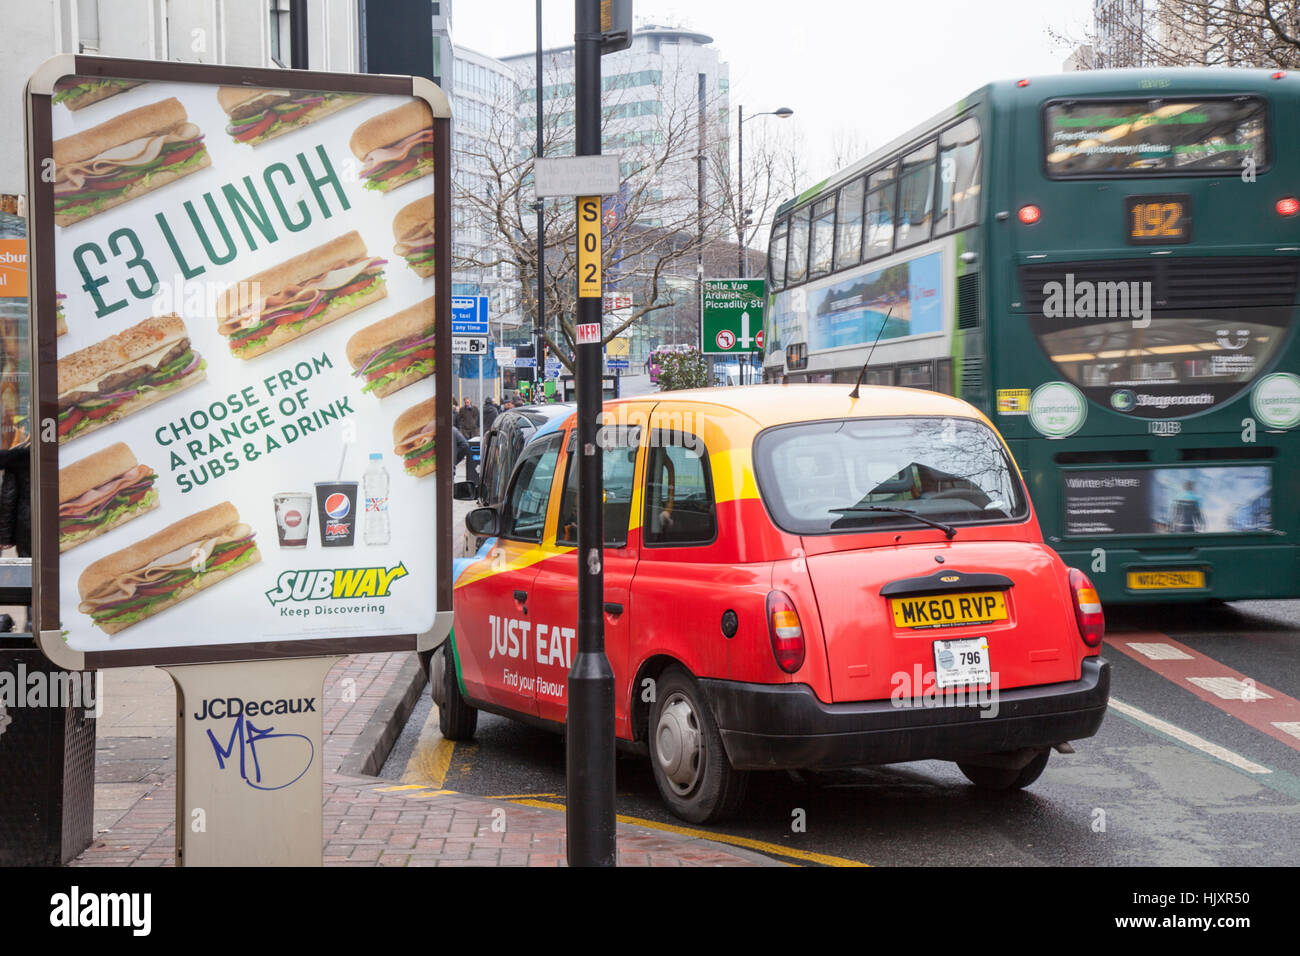 Bill Board Just Eat Advertising On Manchester Taxi With